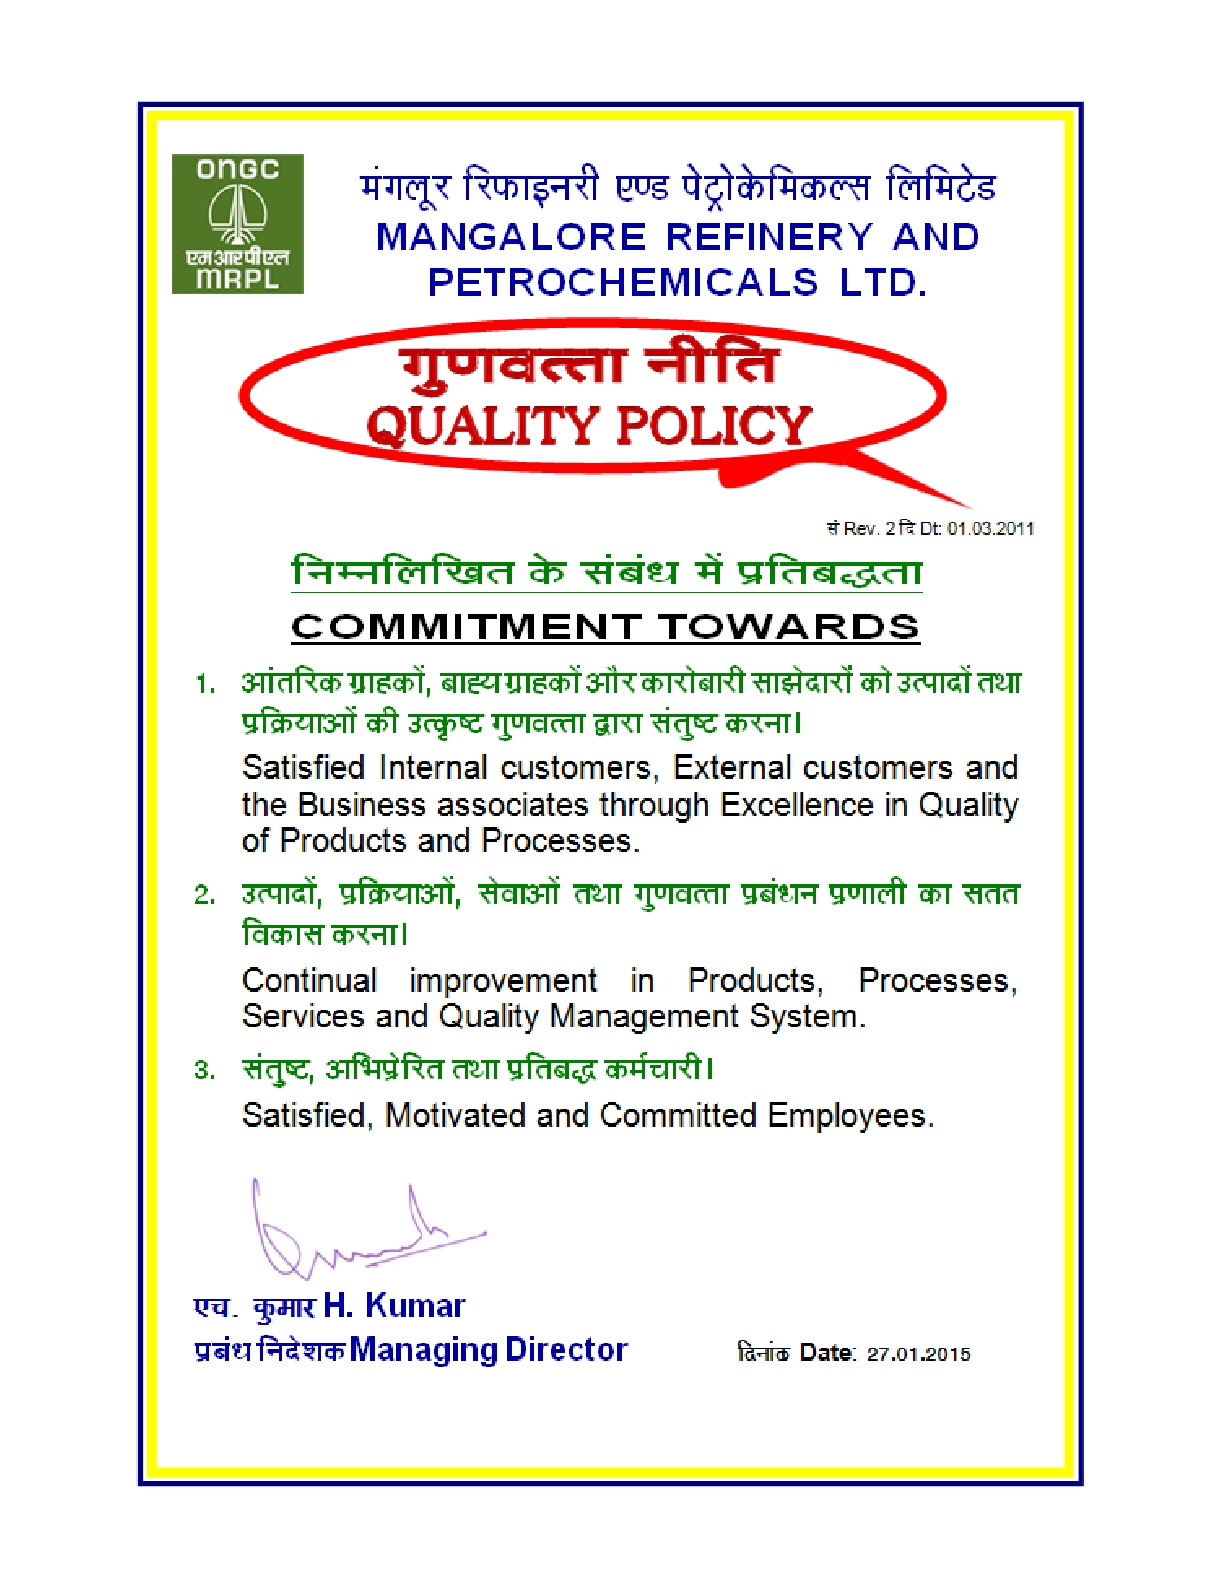 Quality Policy Mangalore Refinery And Petrochemicals Limited